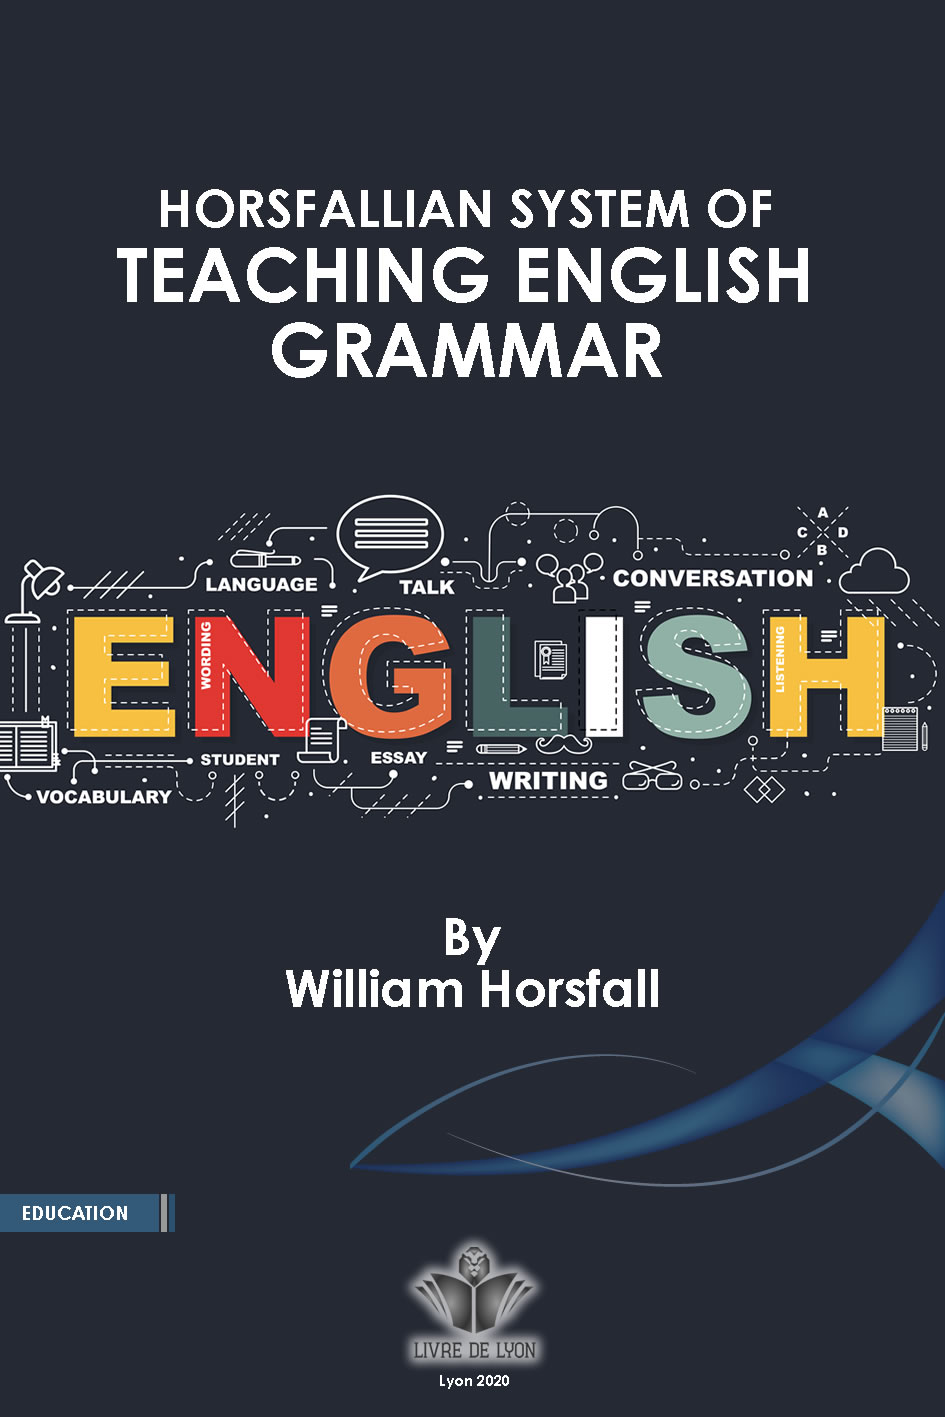 Horsfallian System of English Grammar